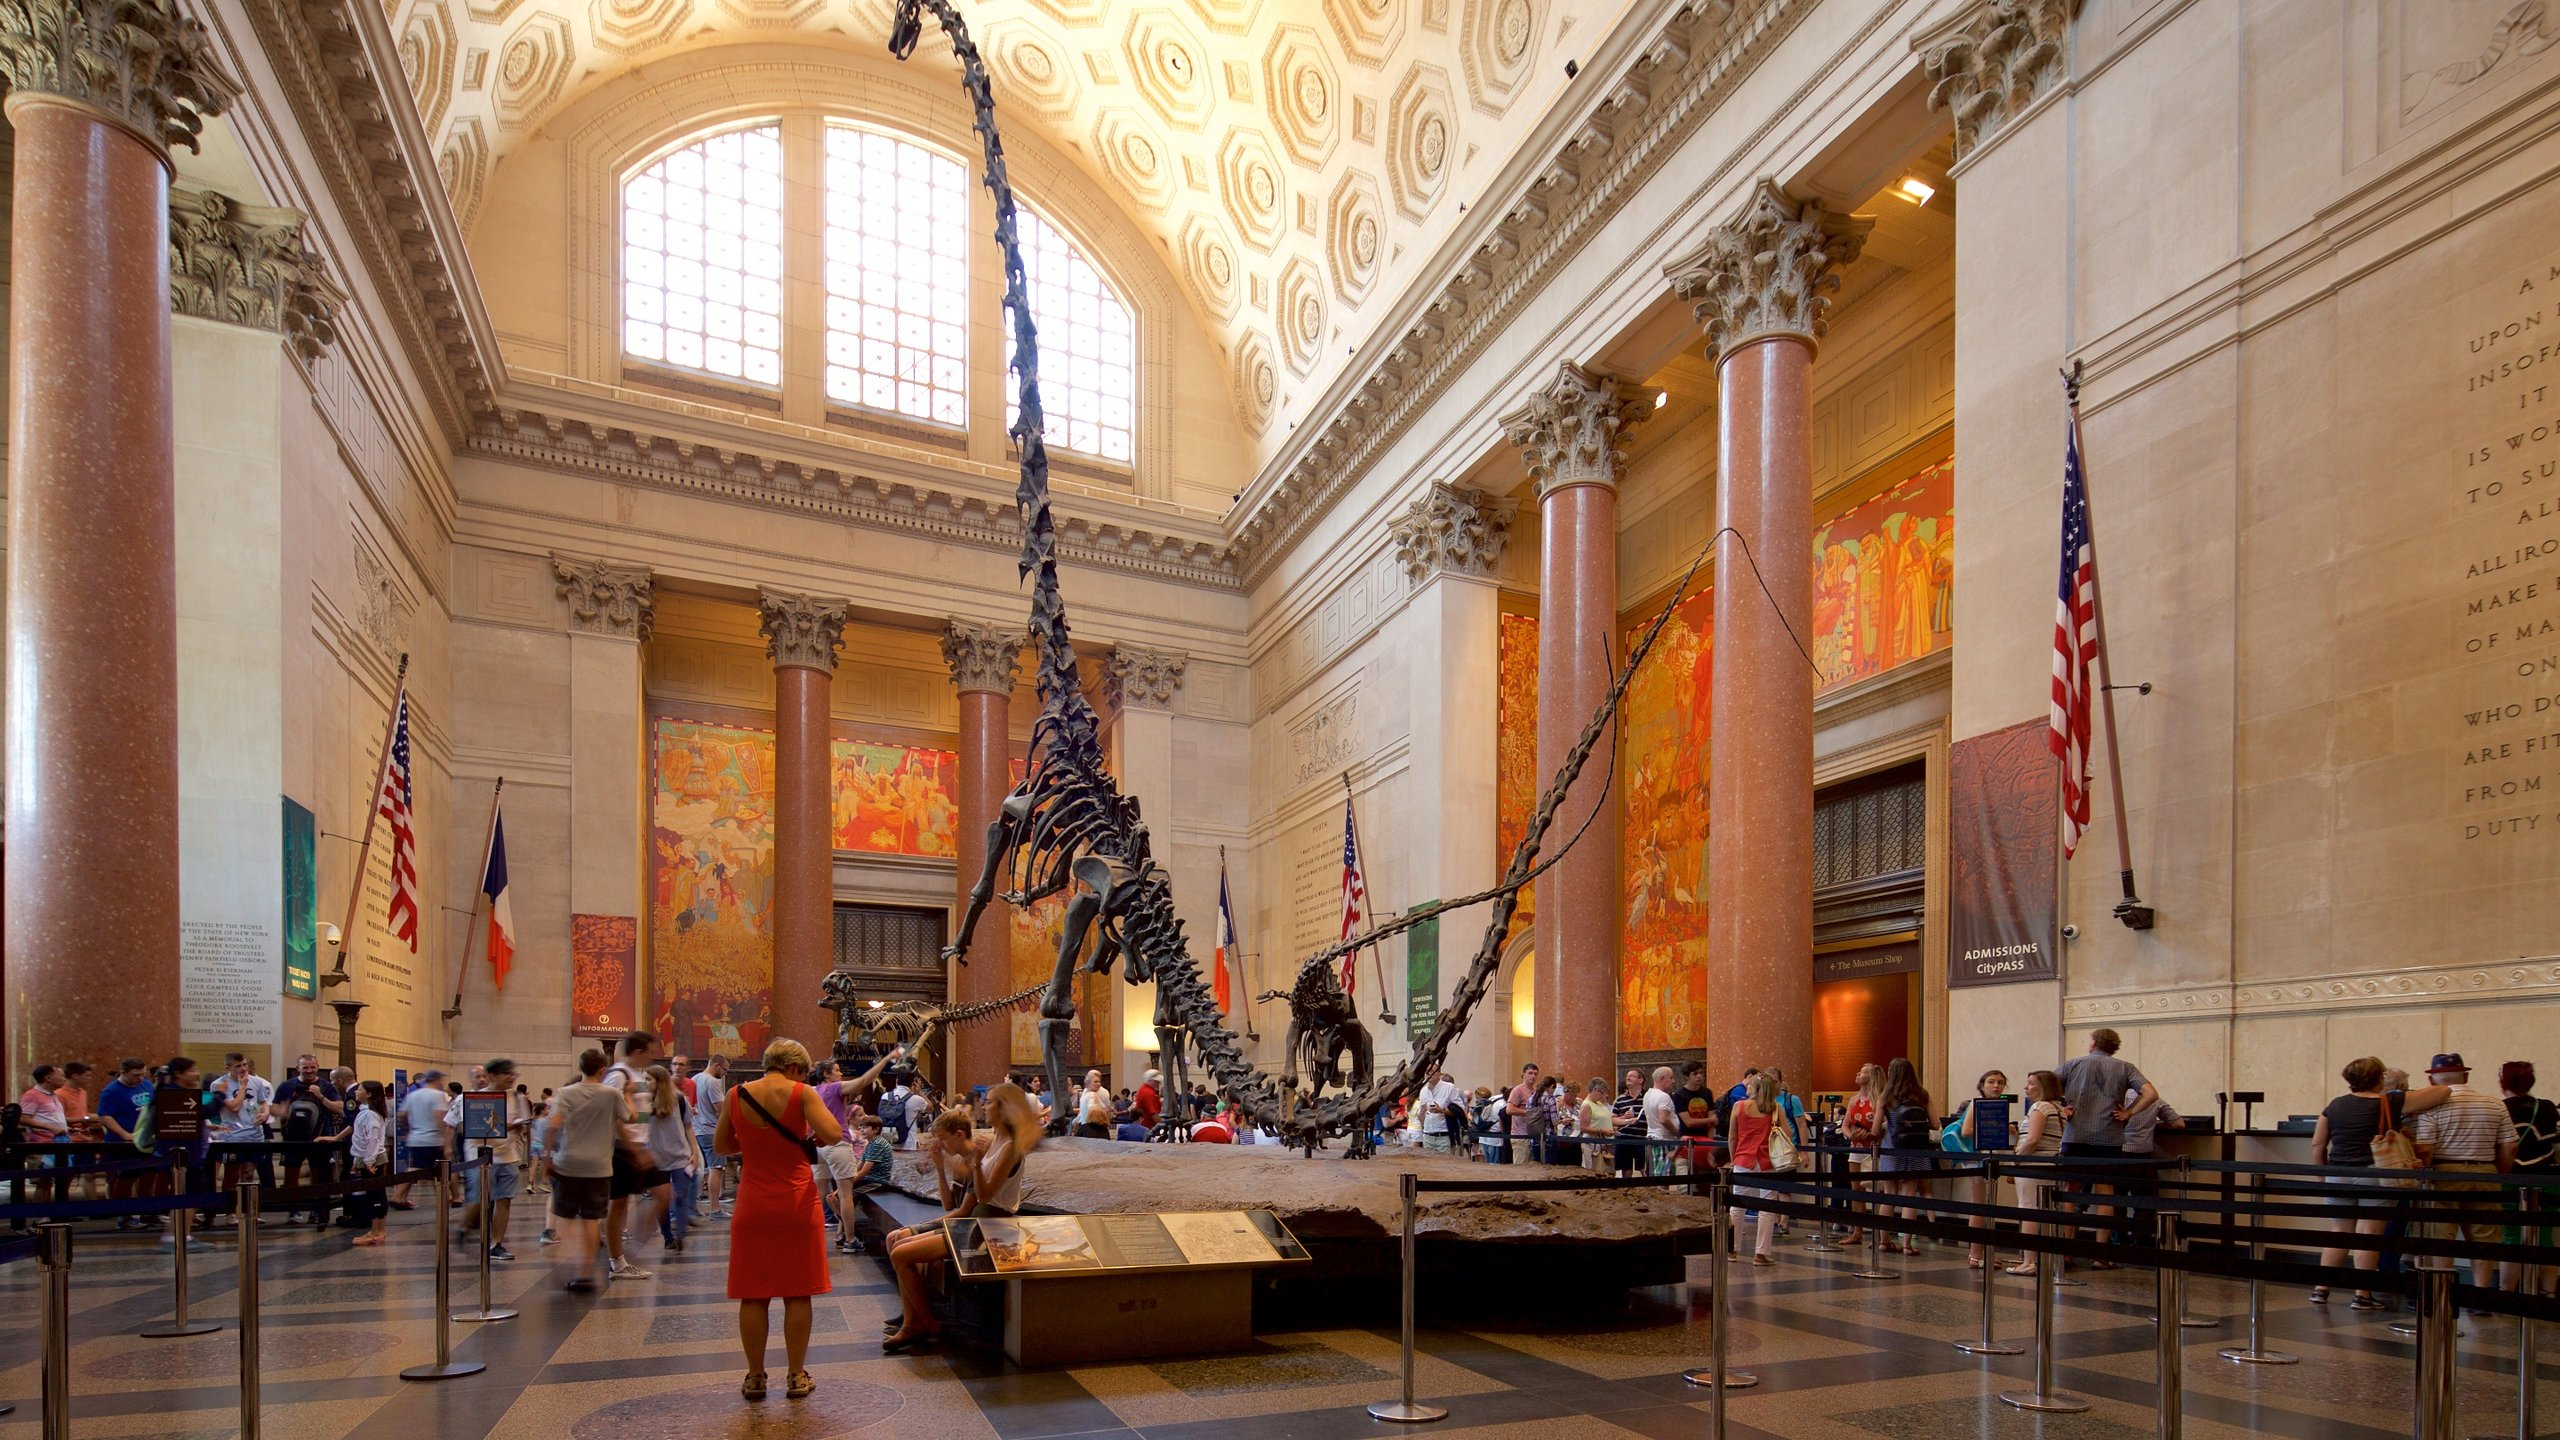 Top 10 Hotels Closest To American Museum Of Natural History In New York From 69